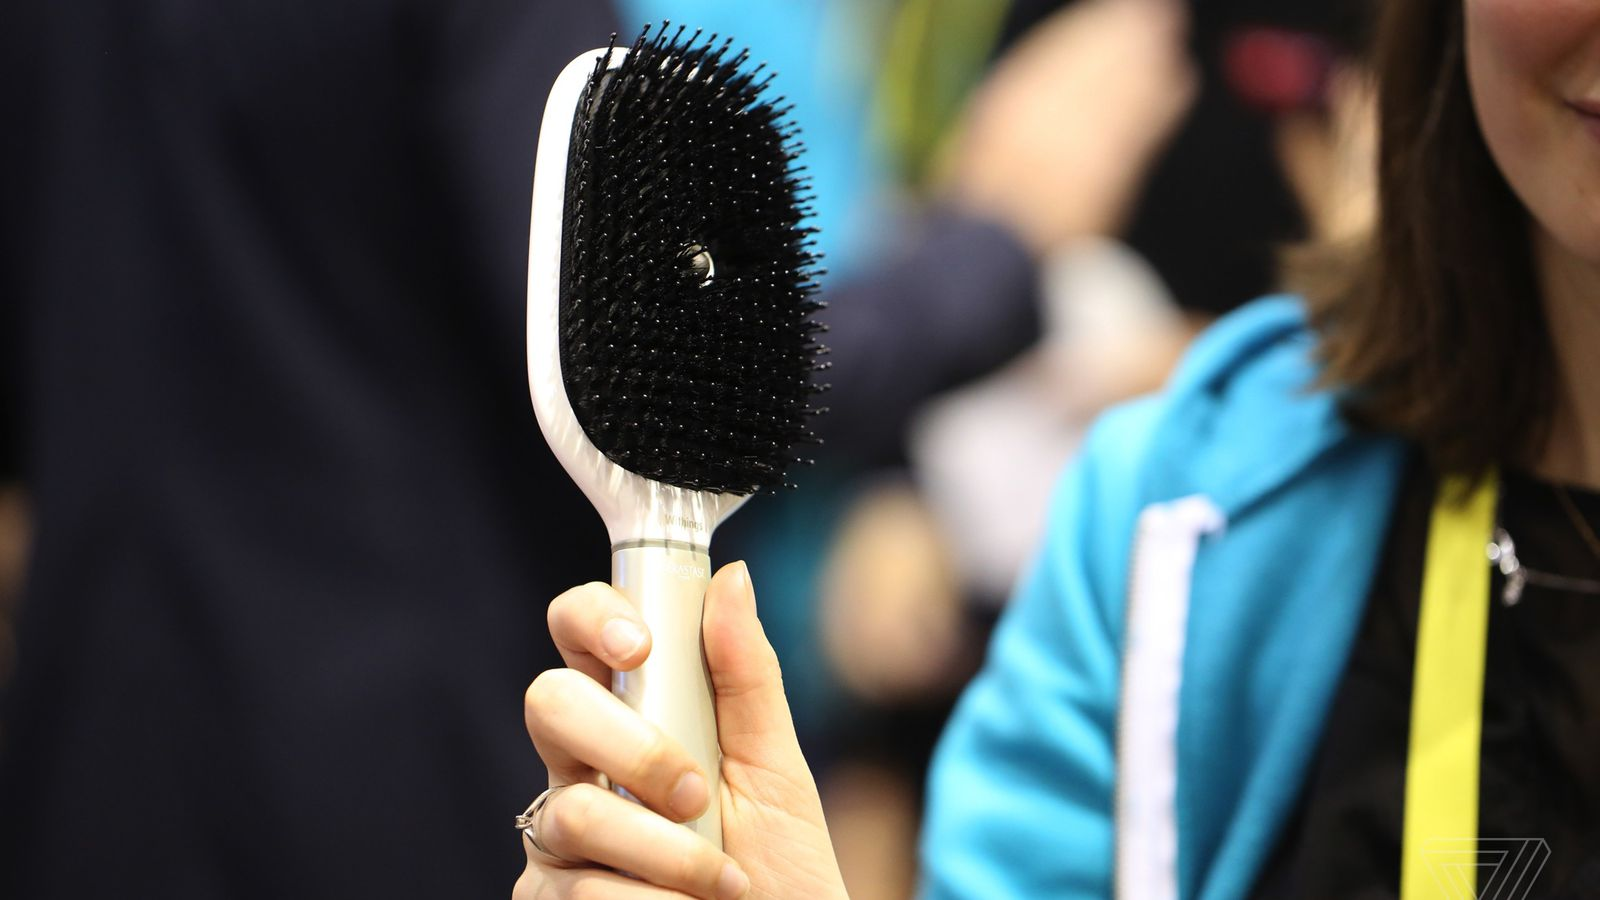 Withings and L'Oreal have made a smart hair brush, in the latest edition of 'You're doing it wrong'